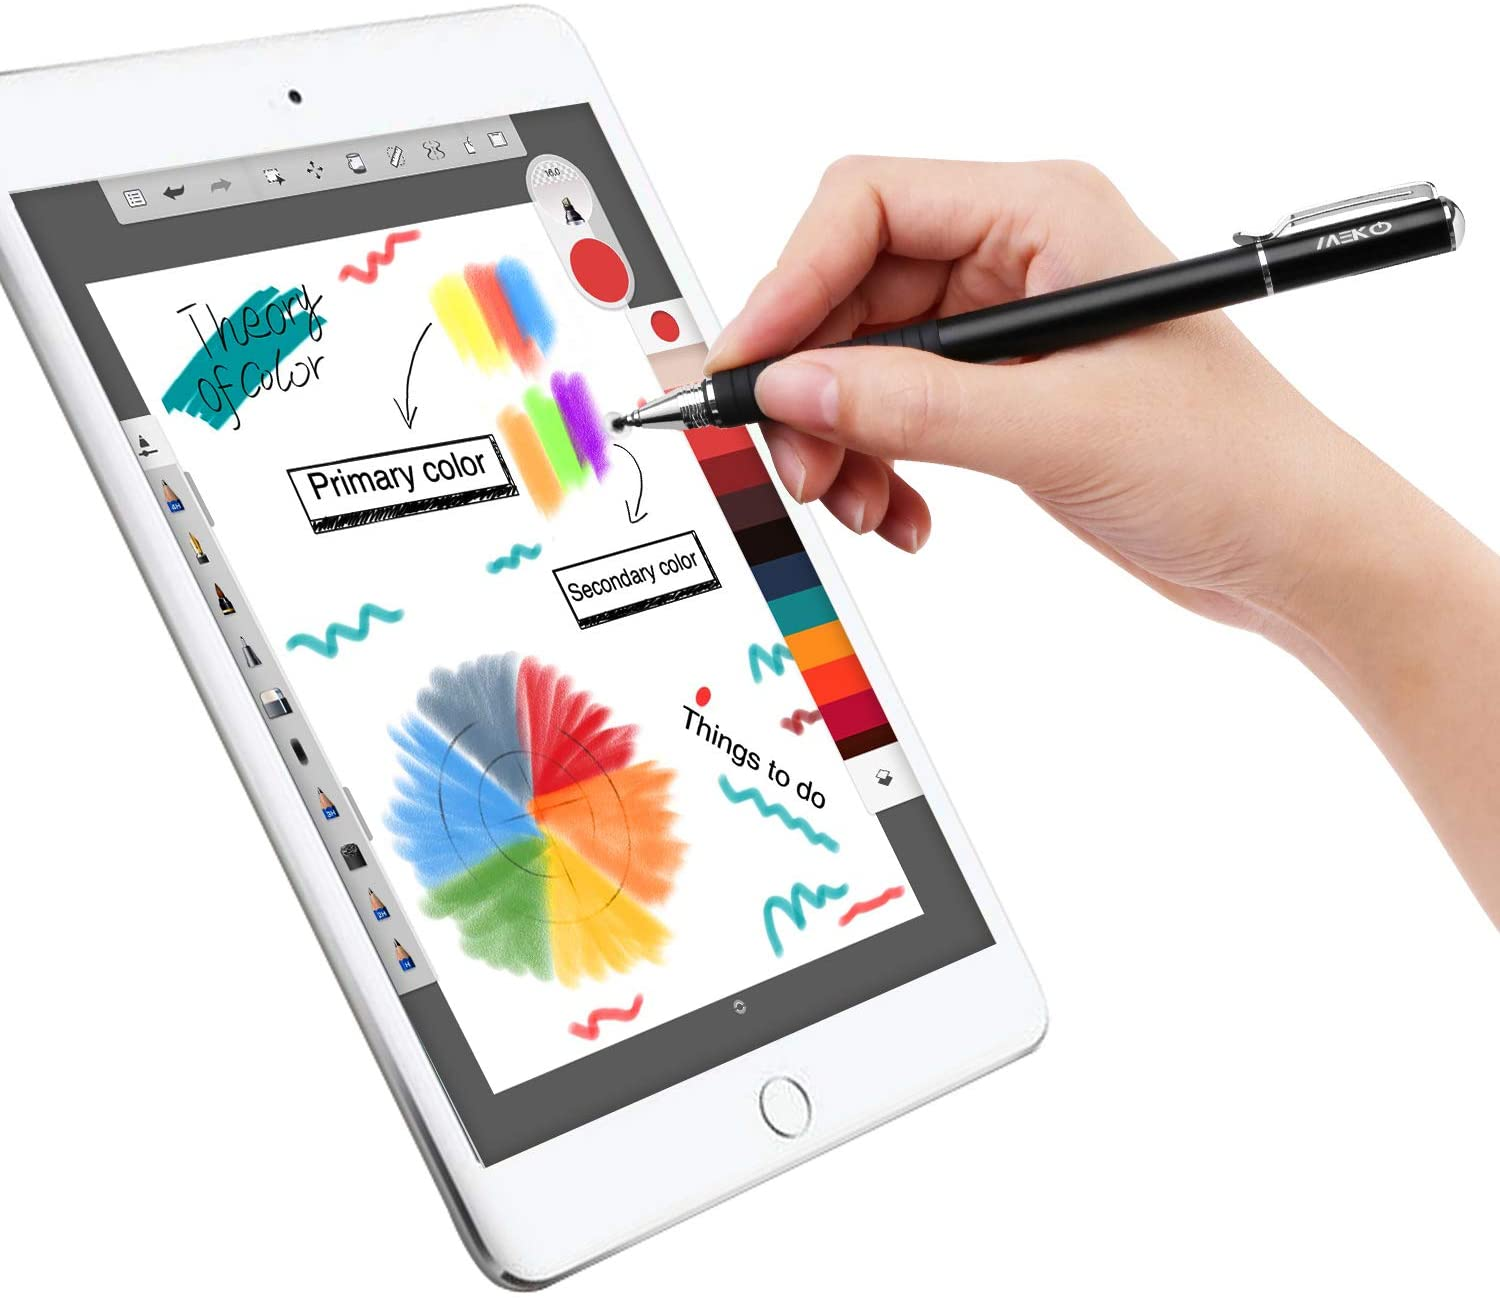 2pc 2-in-1 Stylus Pen for Touchscreen Phone Tablet with Conductive Head/&Disc Tip